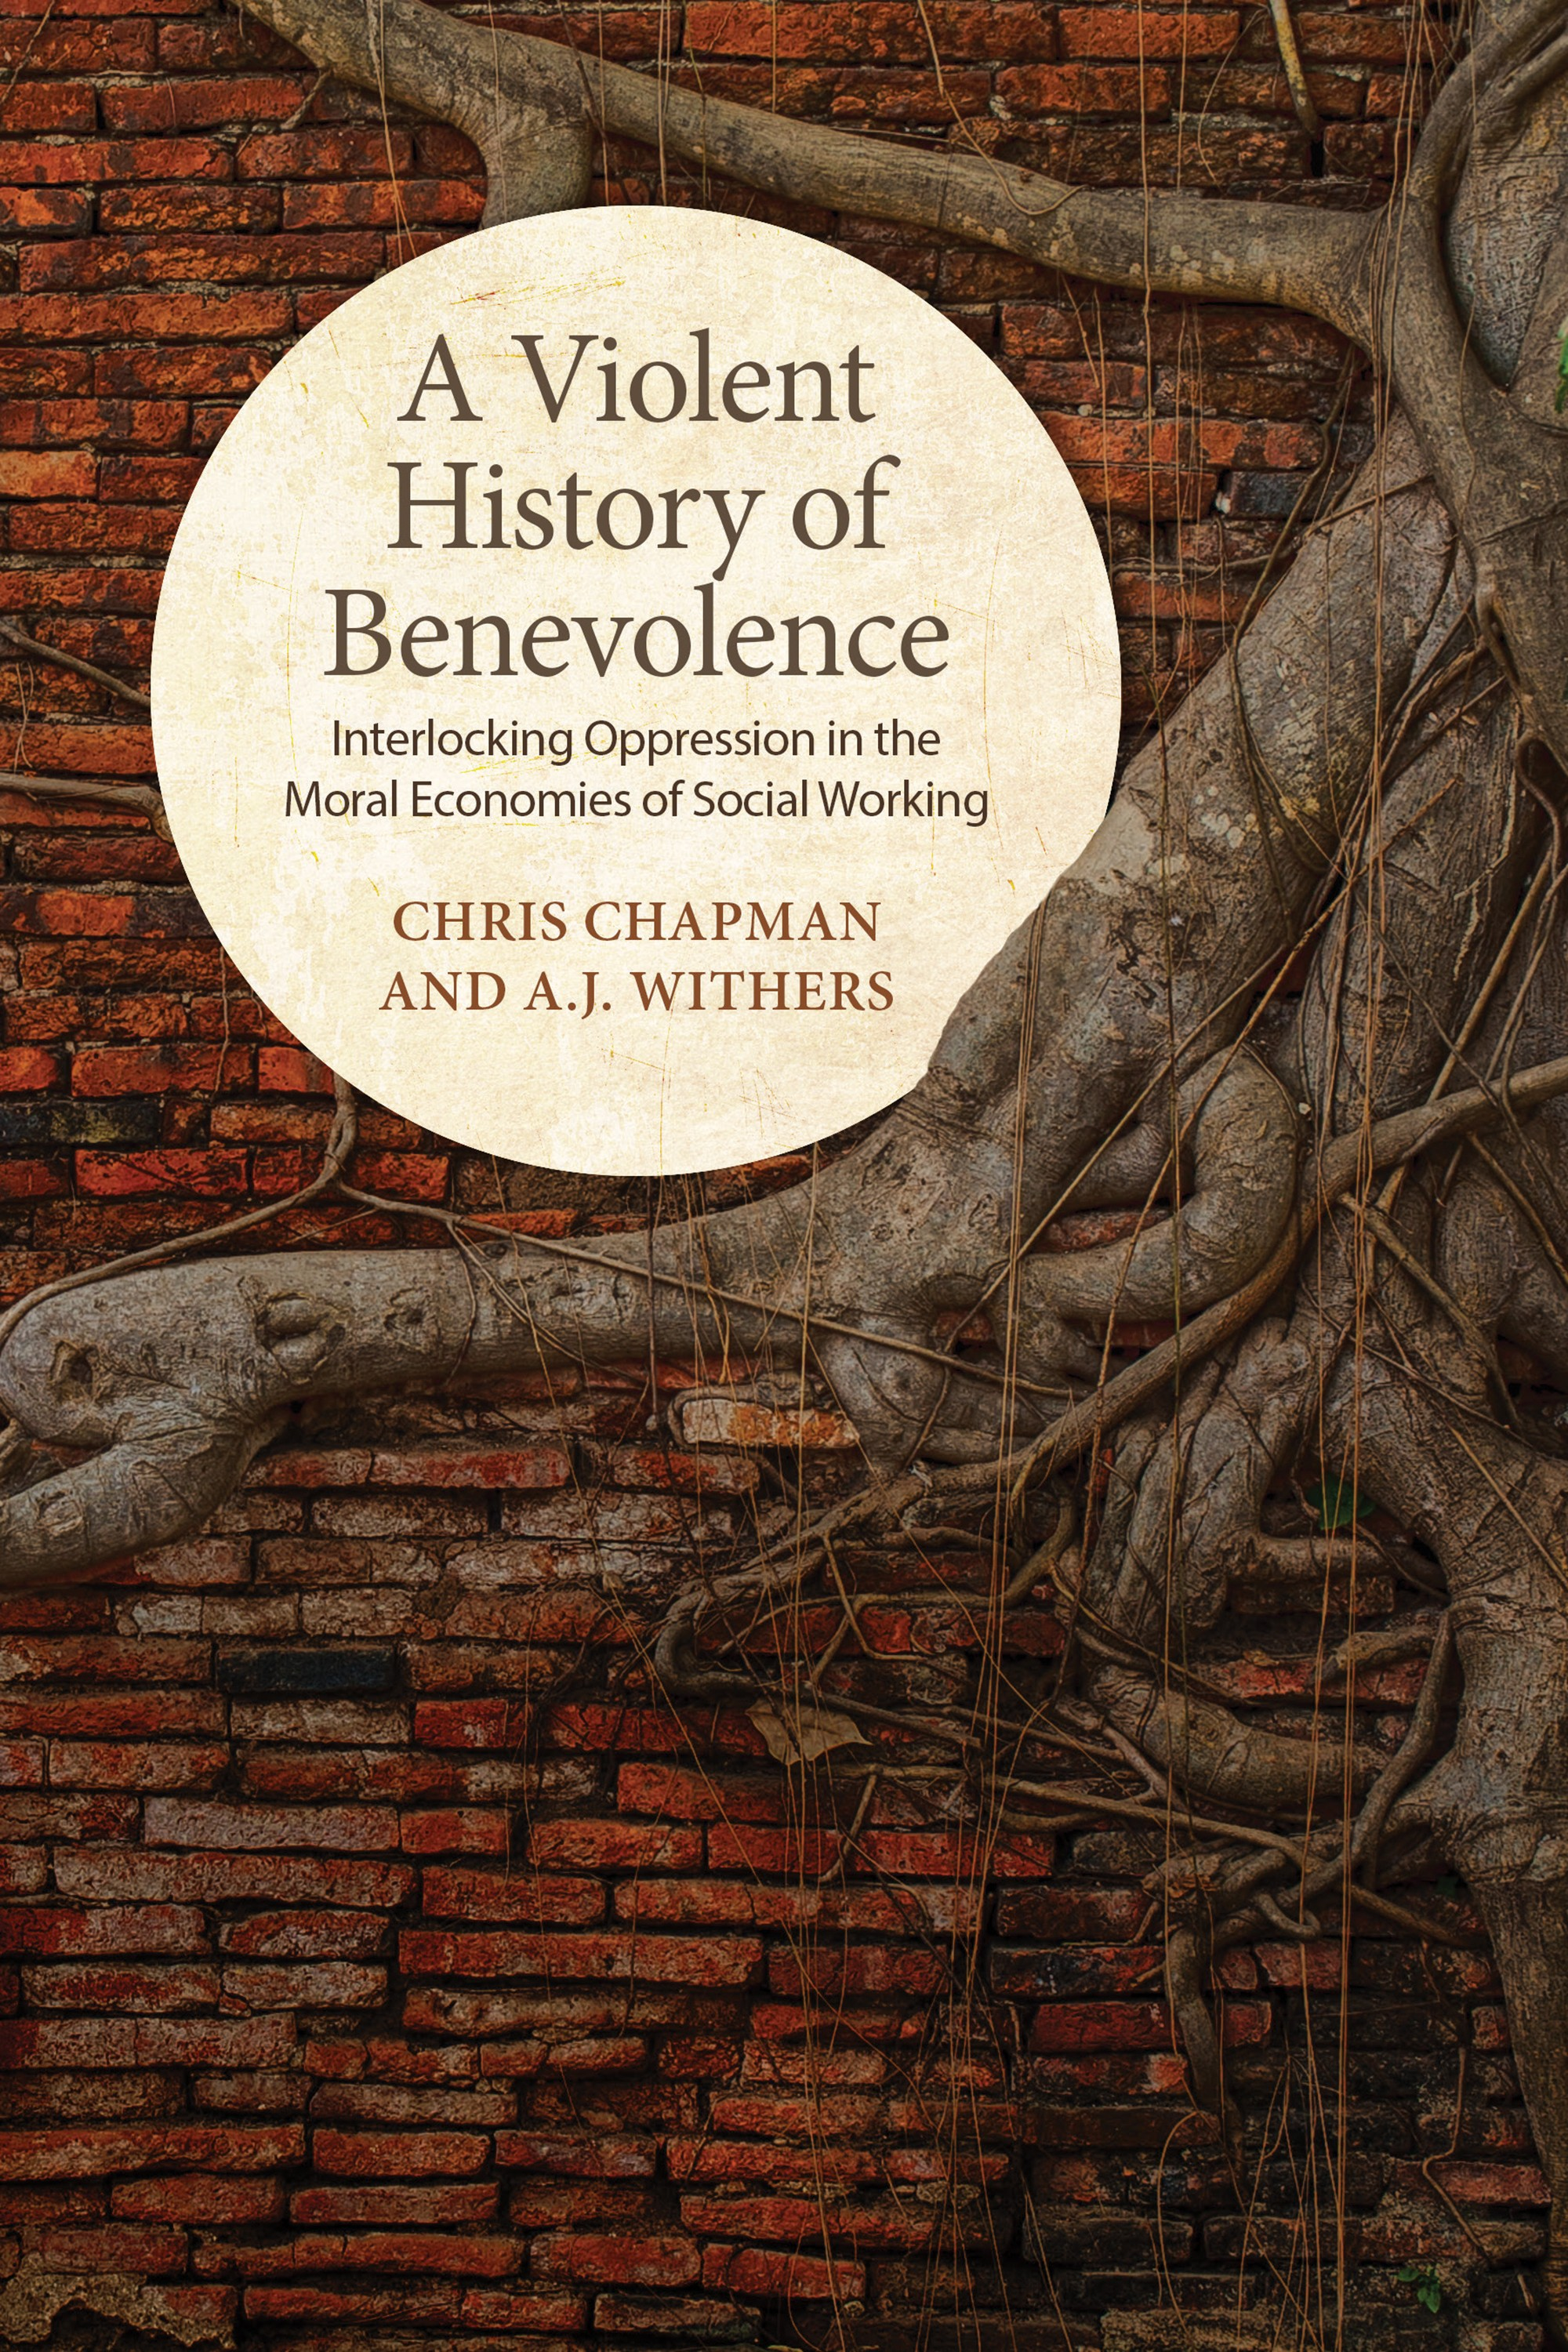 Cover of A Violent History of Benevolence.